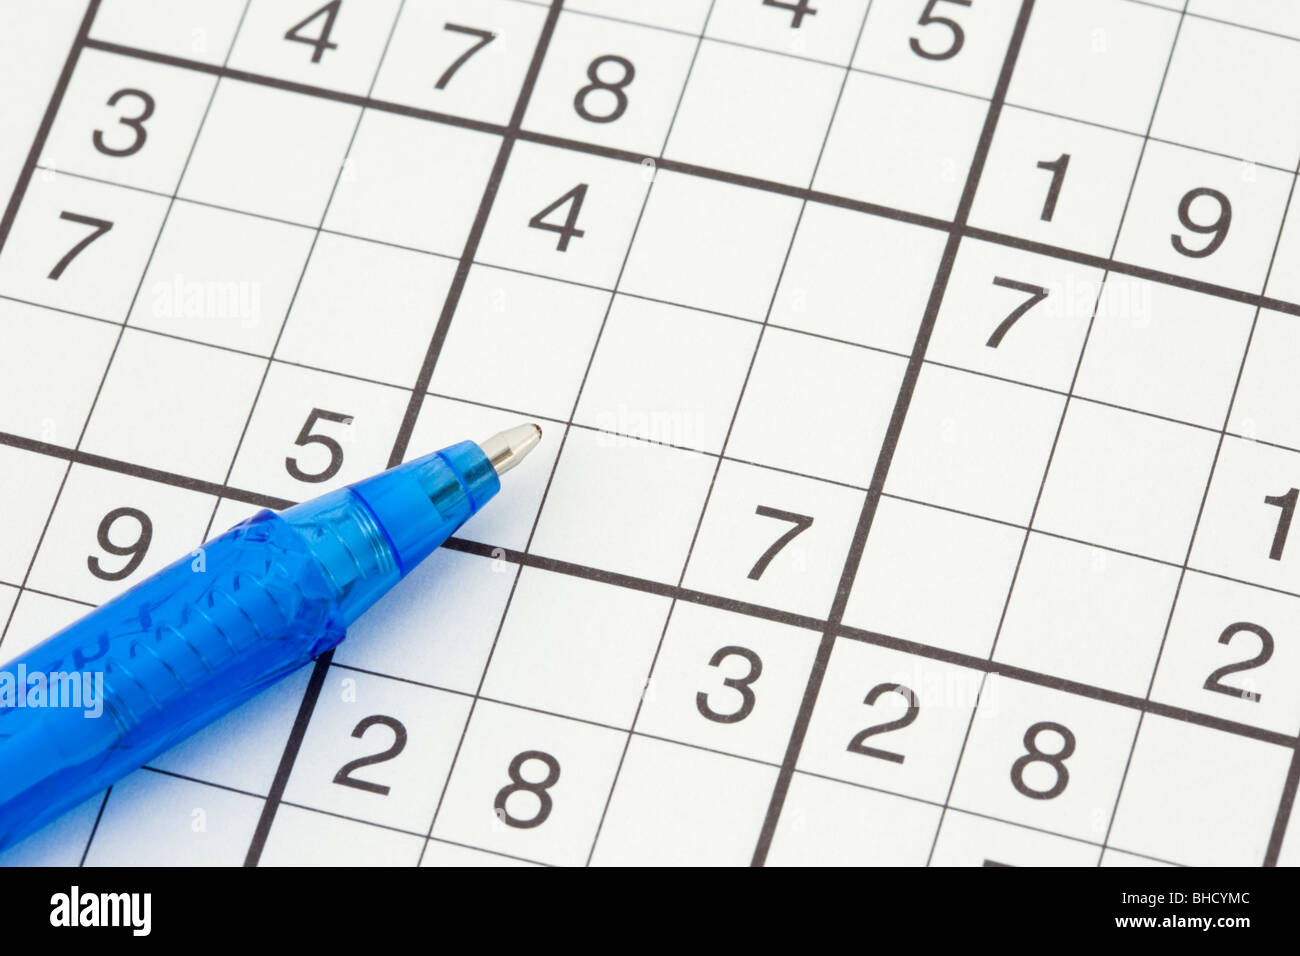 Suduko numbers game and pen close-up - Stock Image